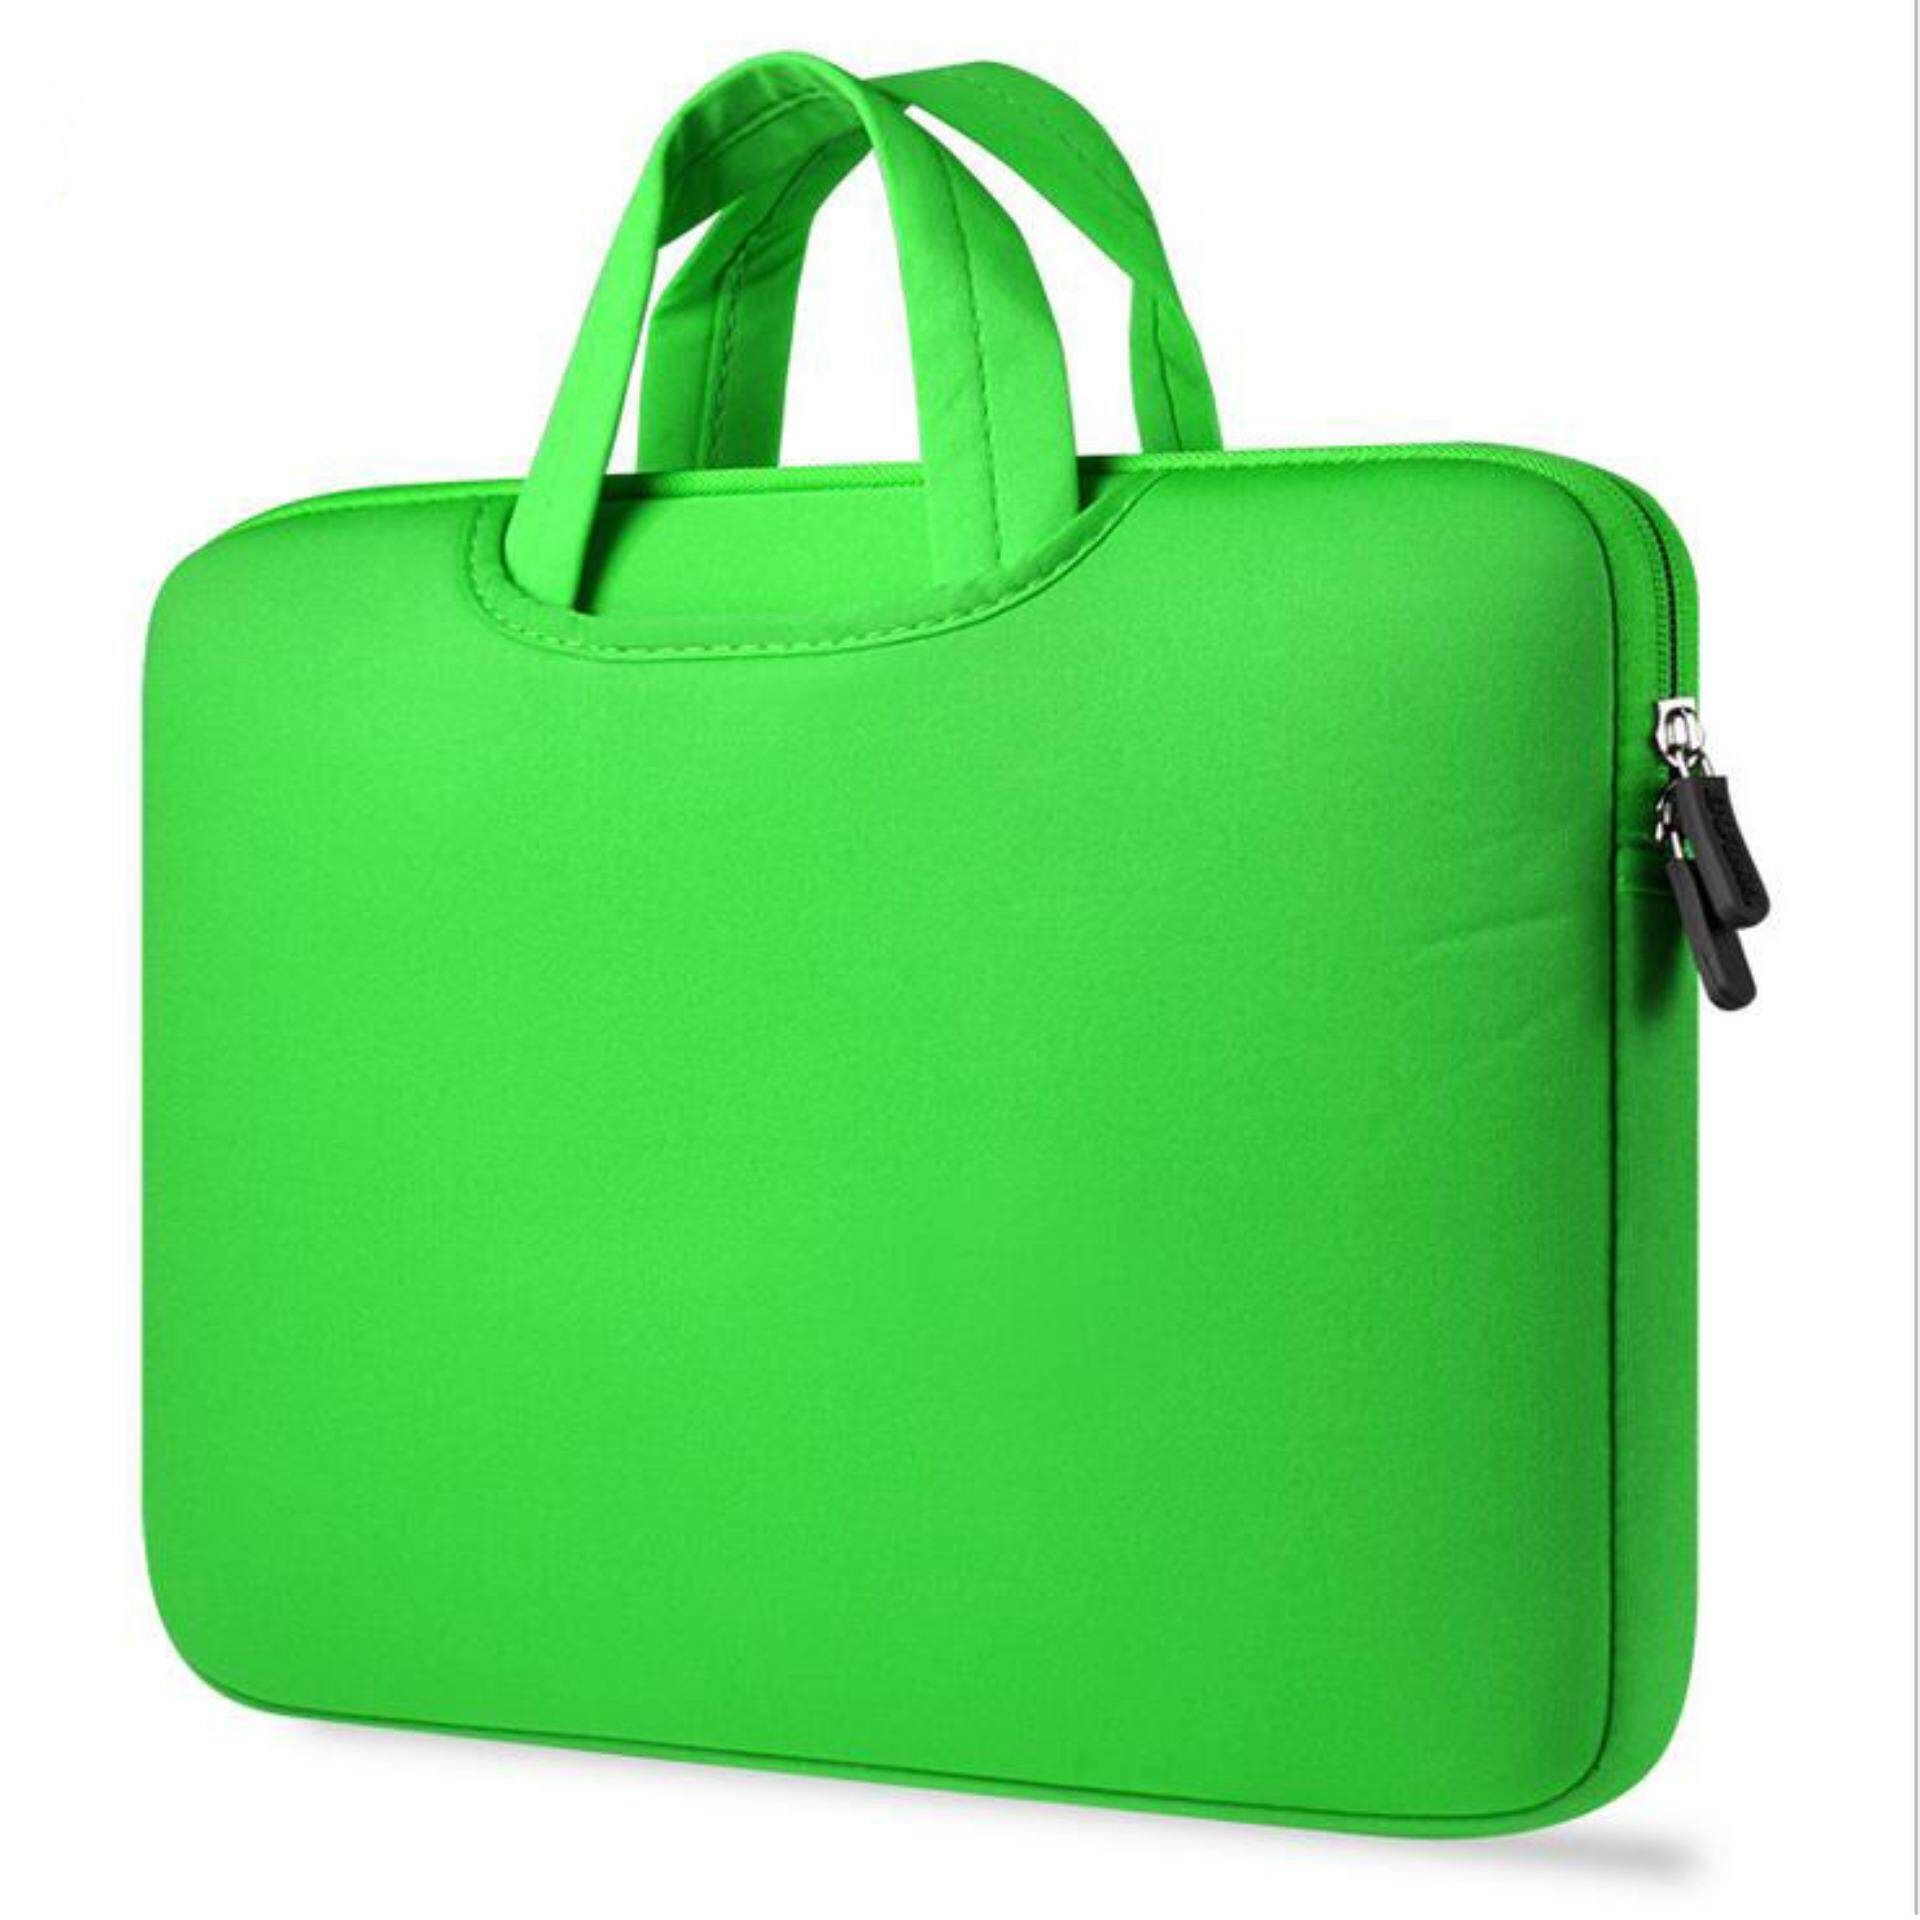 a903c9f58b27 Formal Bags for Men for sale - Business Bags for Men online brands ...